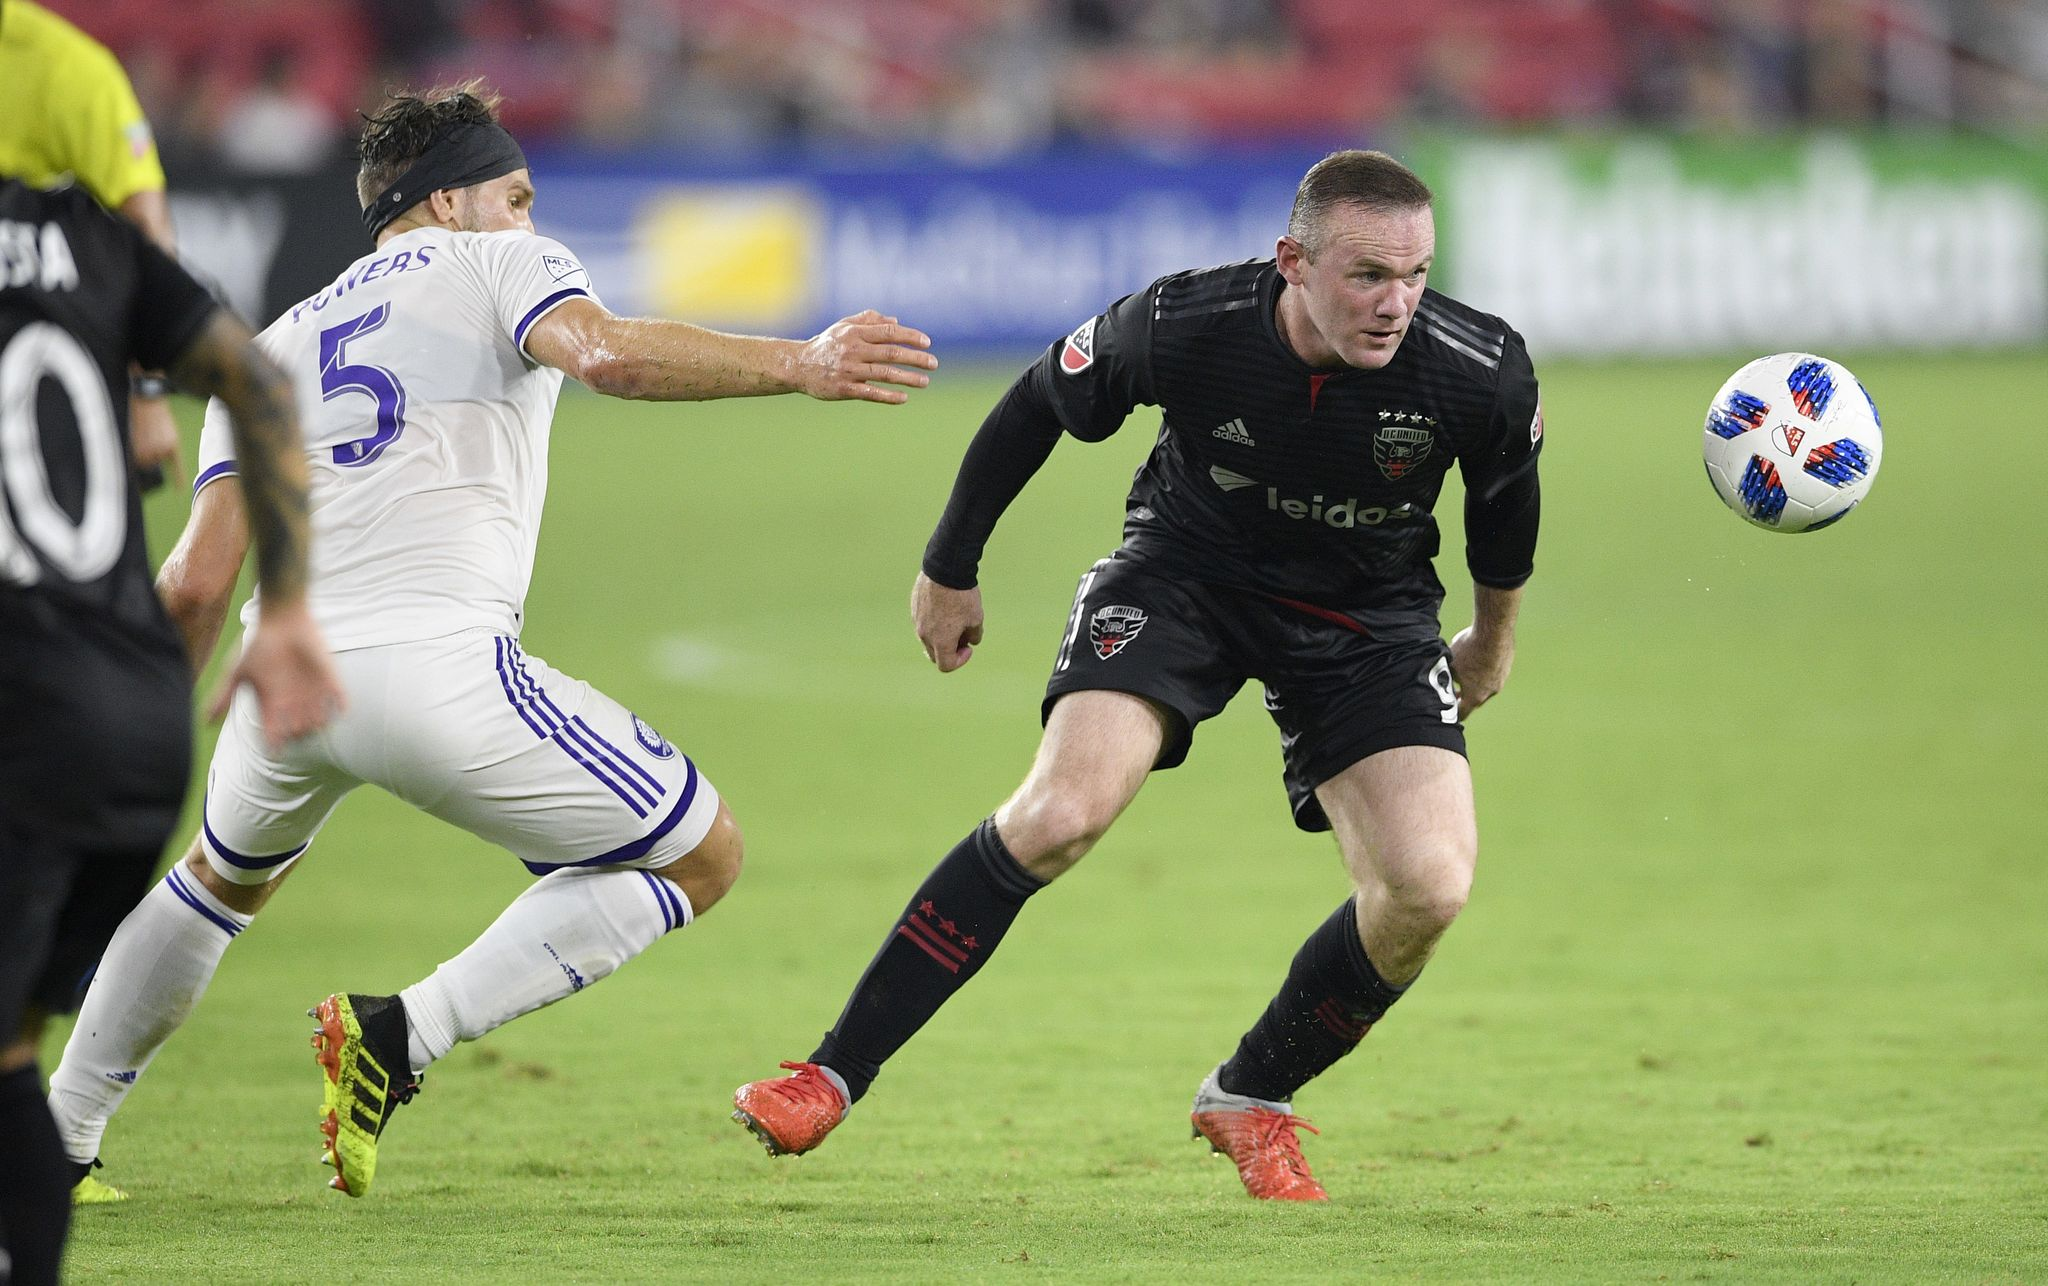 Mls_orlando_city_dc_united_soccer_69035.jpg-16f87_s2048x1286